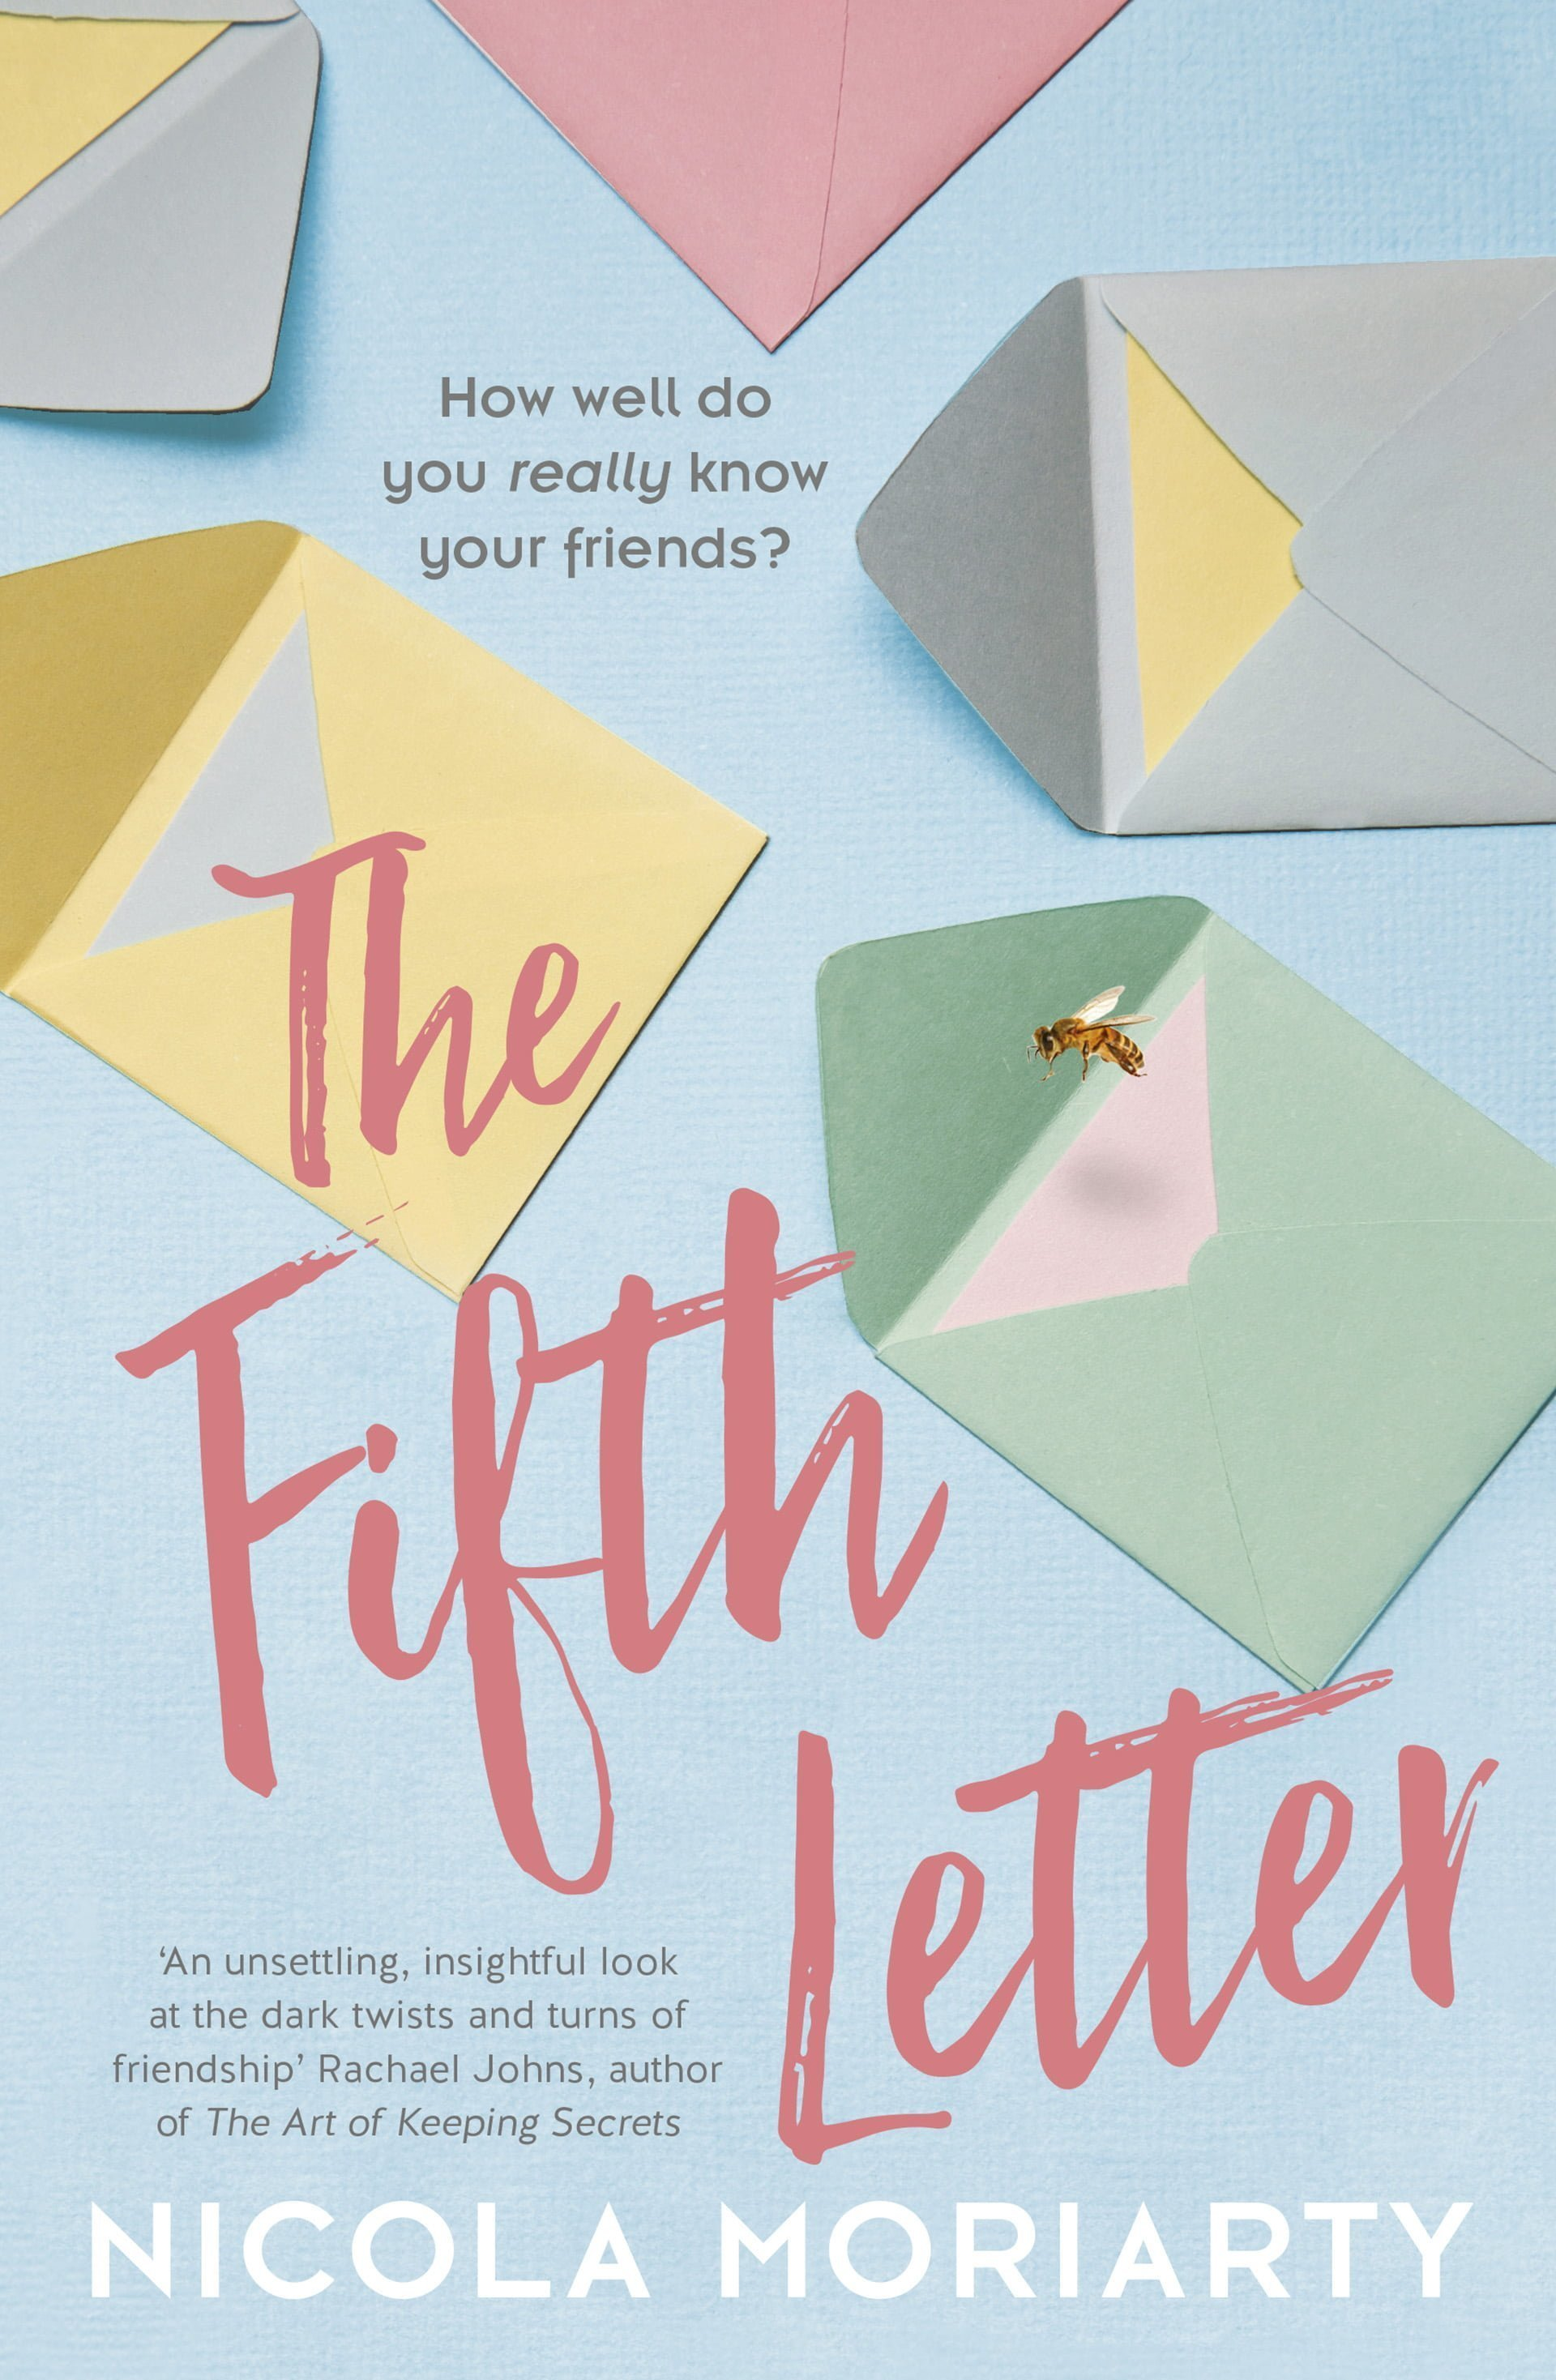 Our Book of the Week: The Fifth Letter by Nicola Moriarty – Better